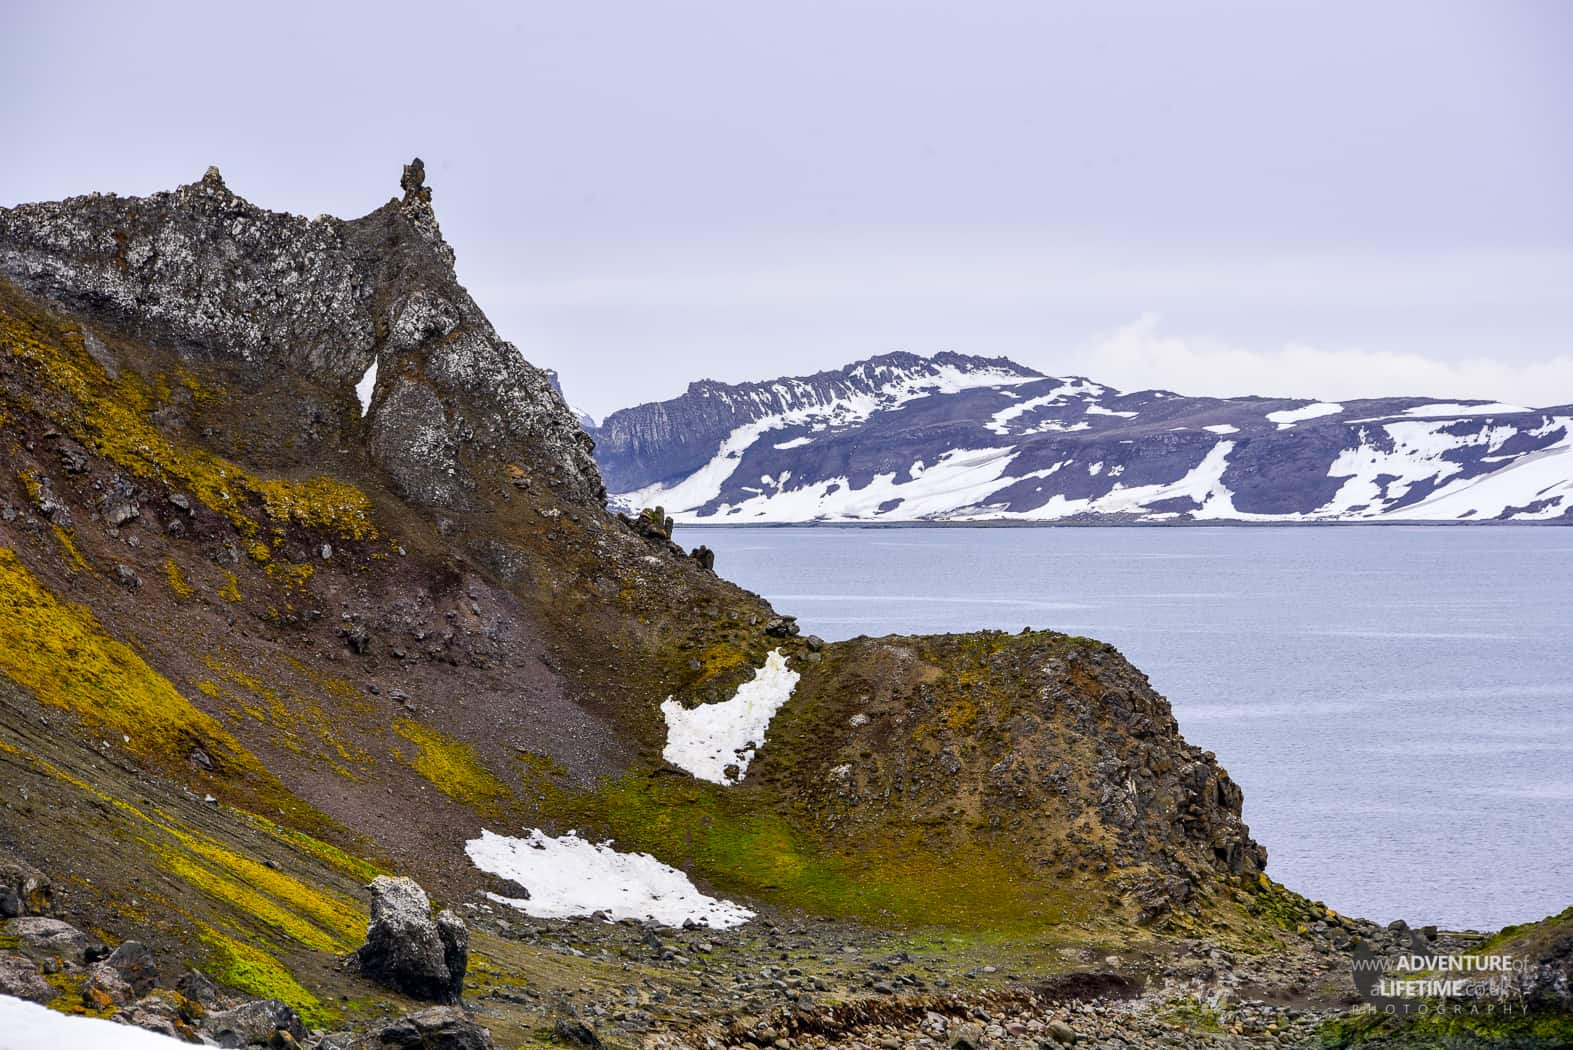 Barrientos Island in South Shetlands, Antarctica